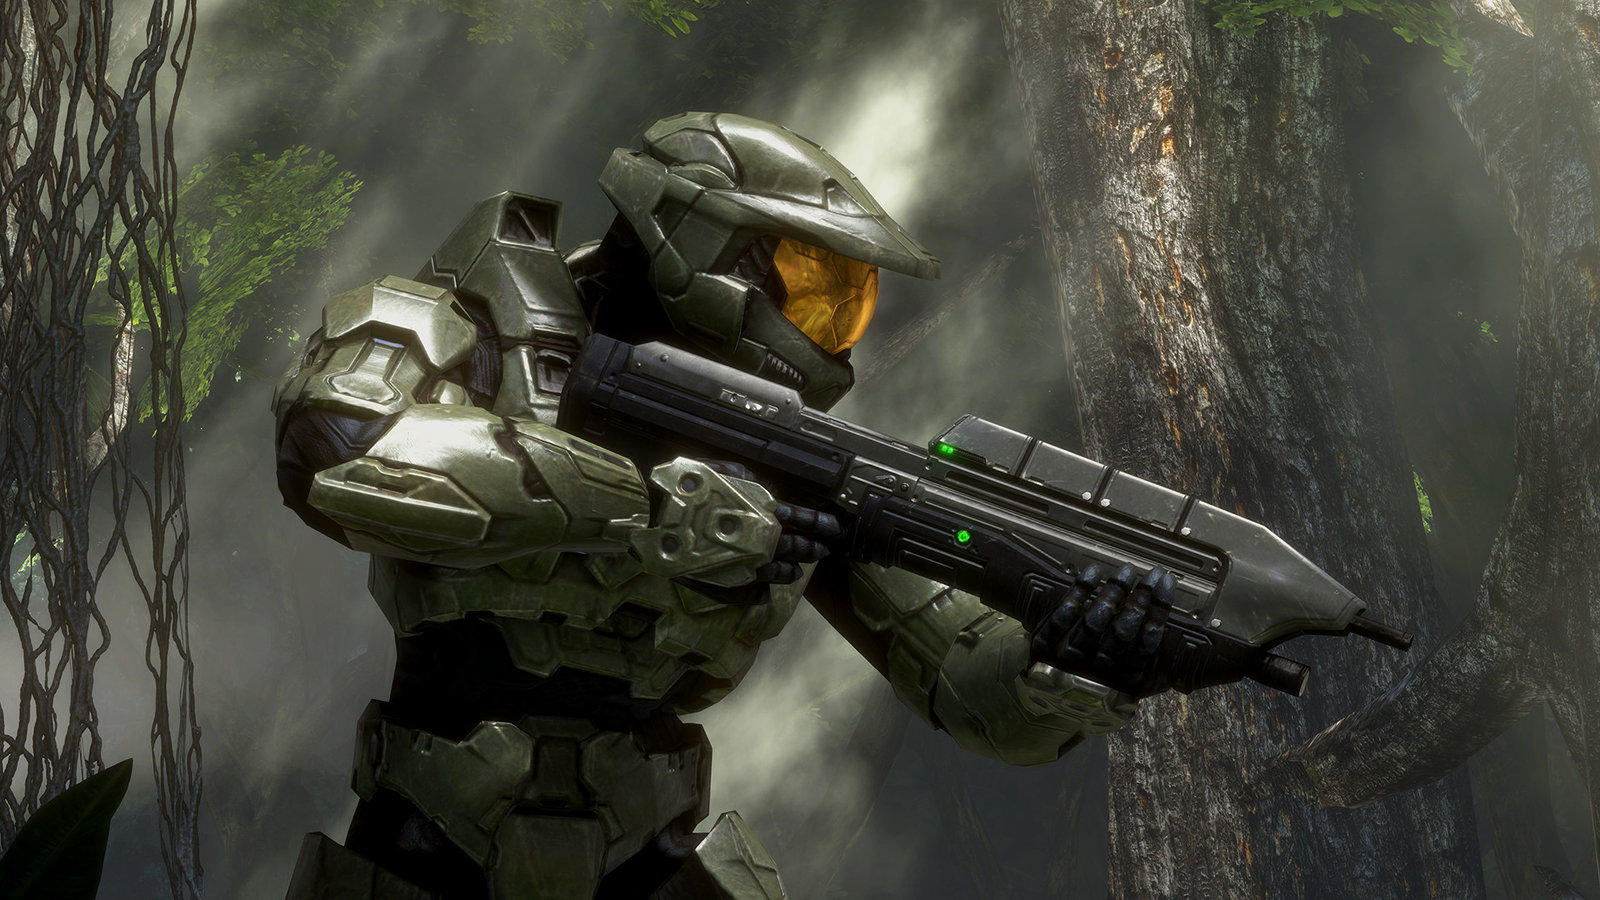 Halo: The Master Chief Collection - Halo 3 image 1